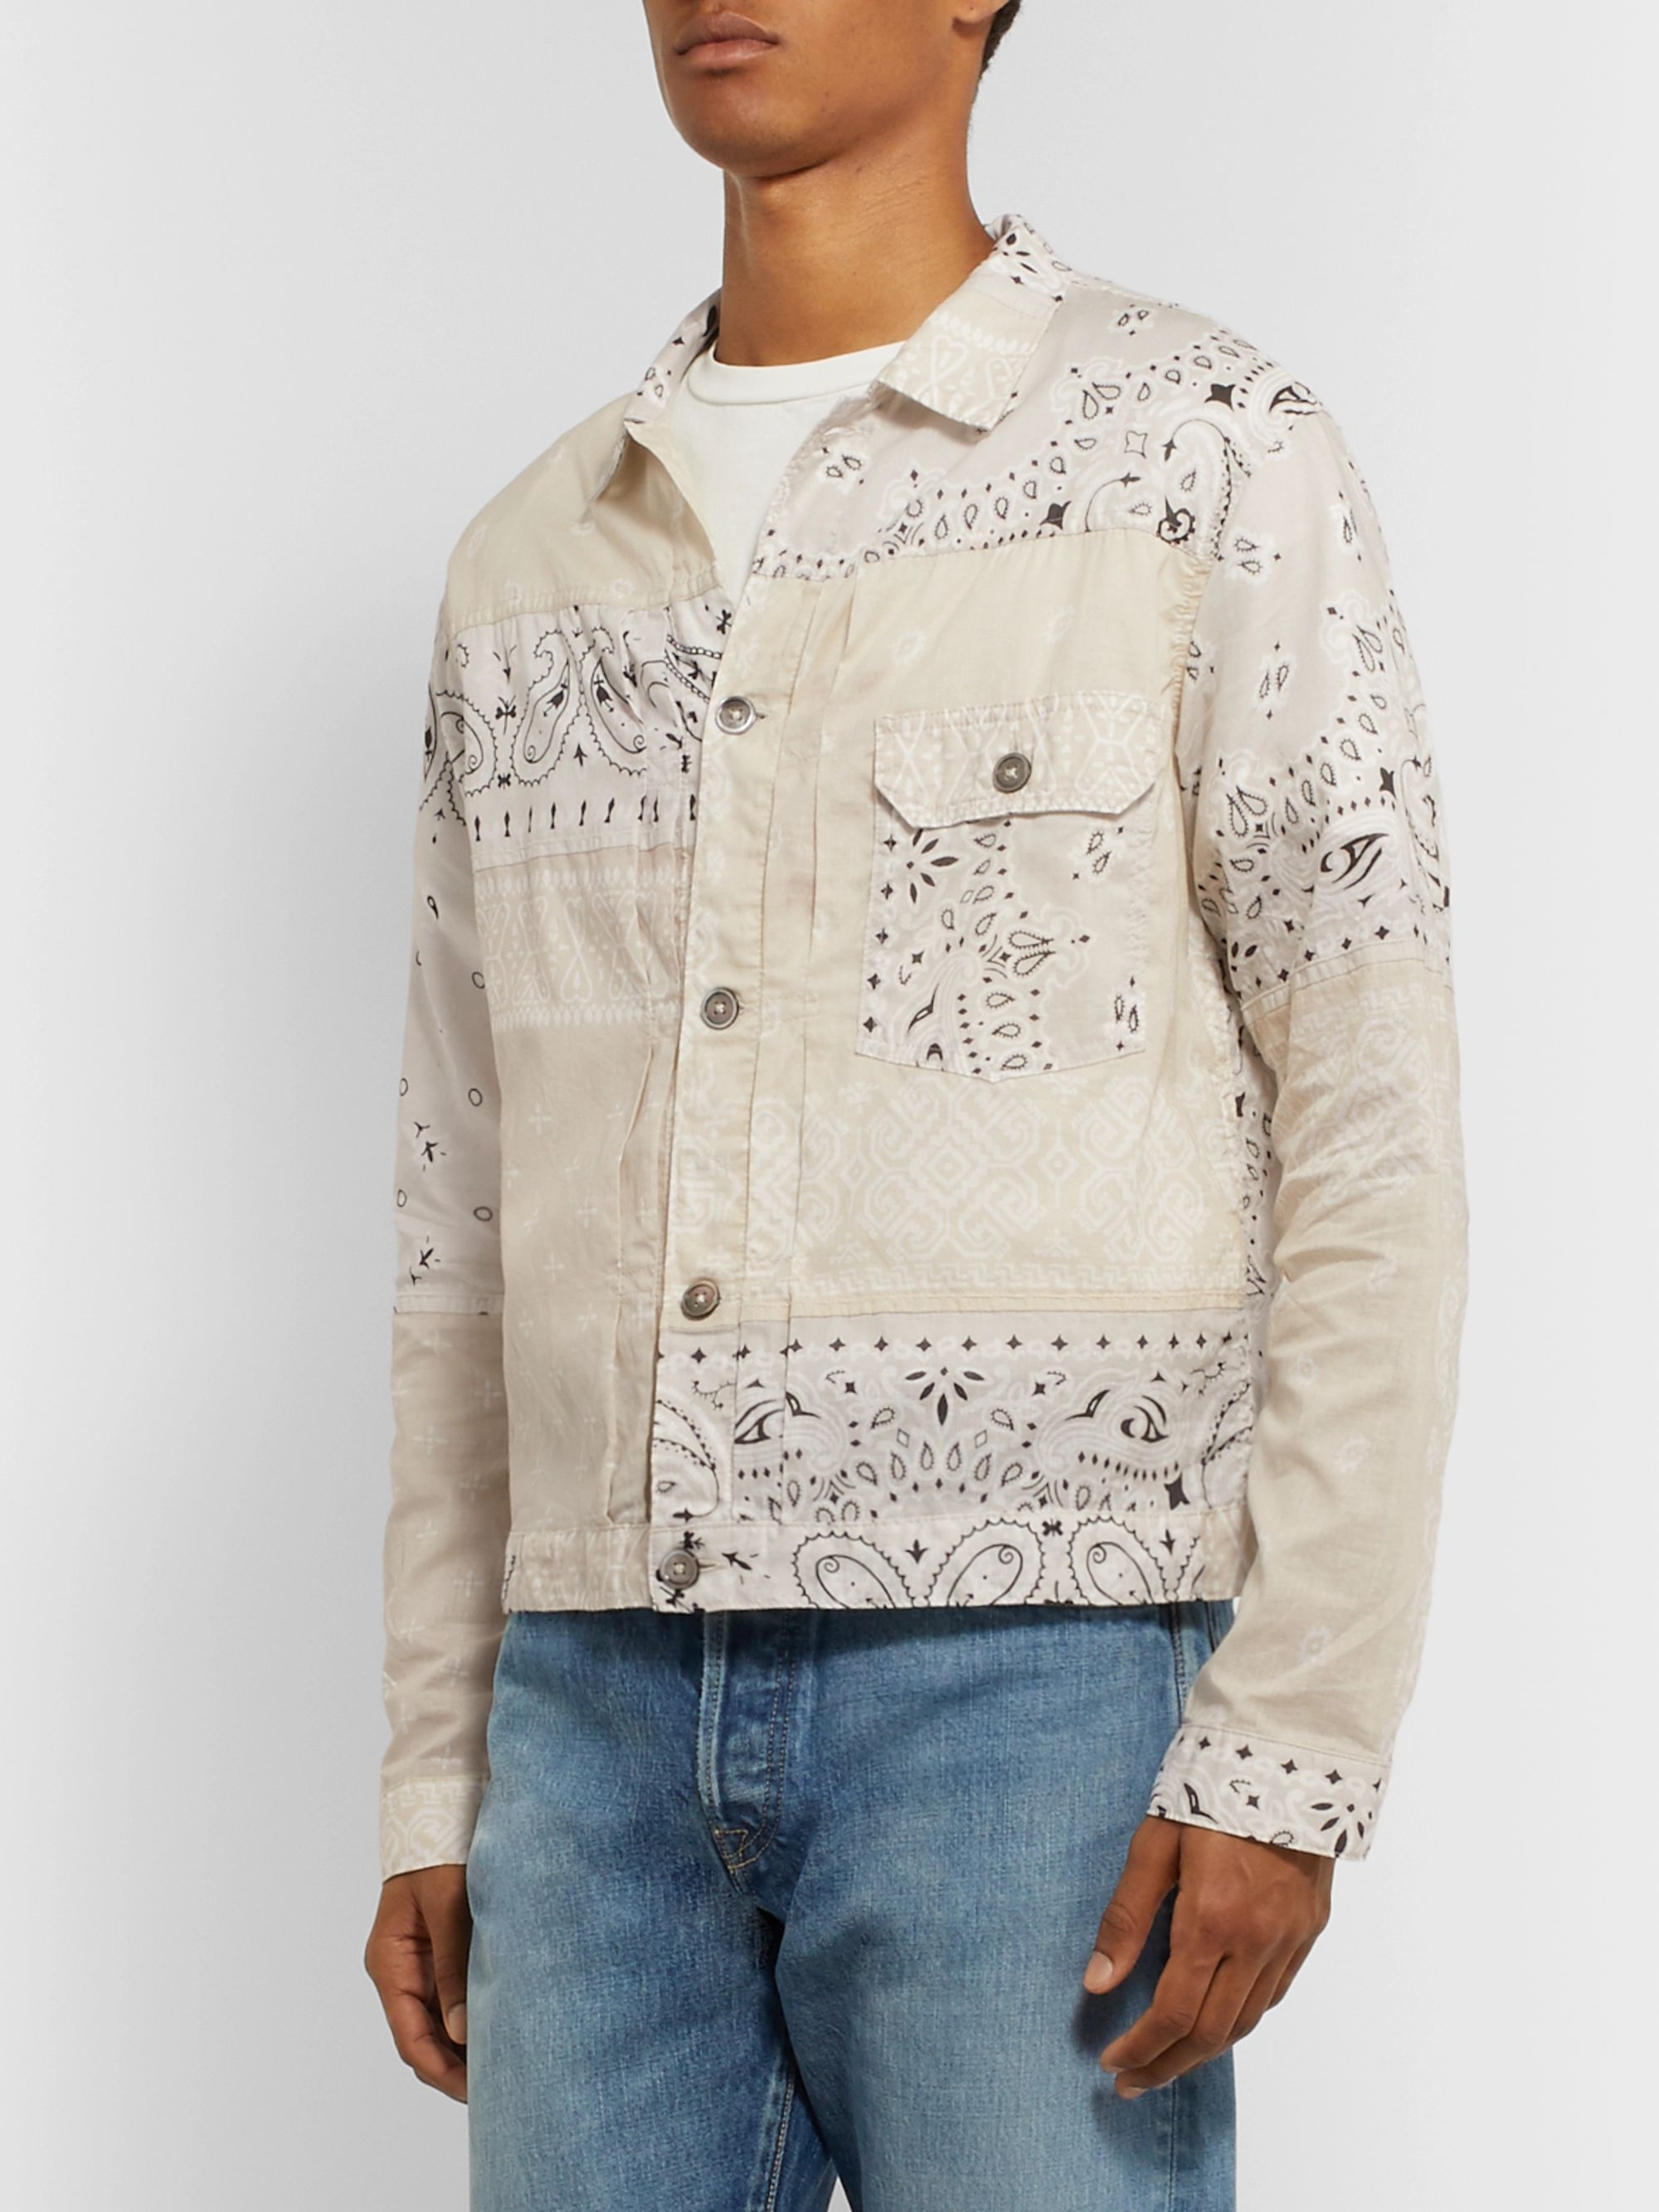 KAPITAL Patchwork Bandana-Print Cotton Trucker Jacket